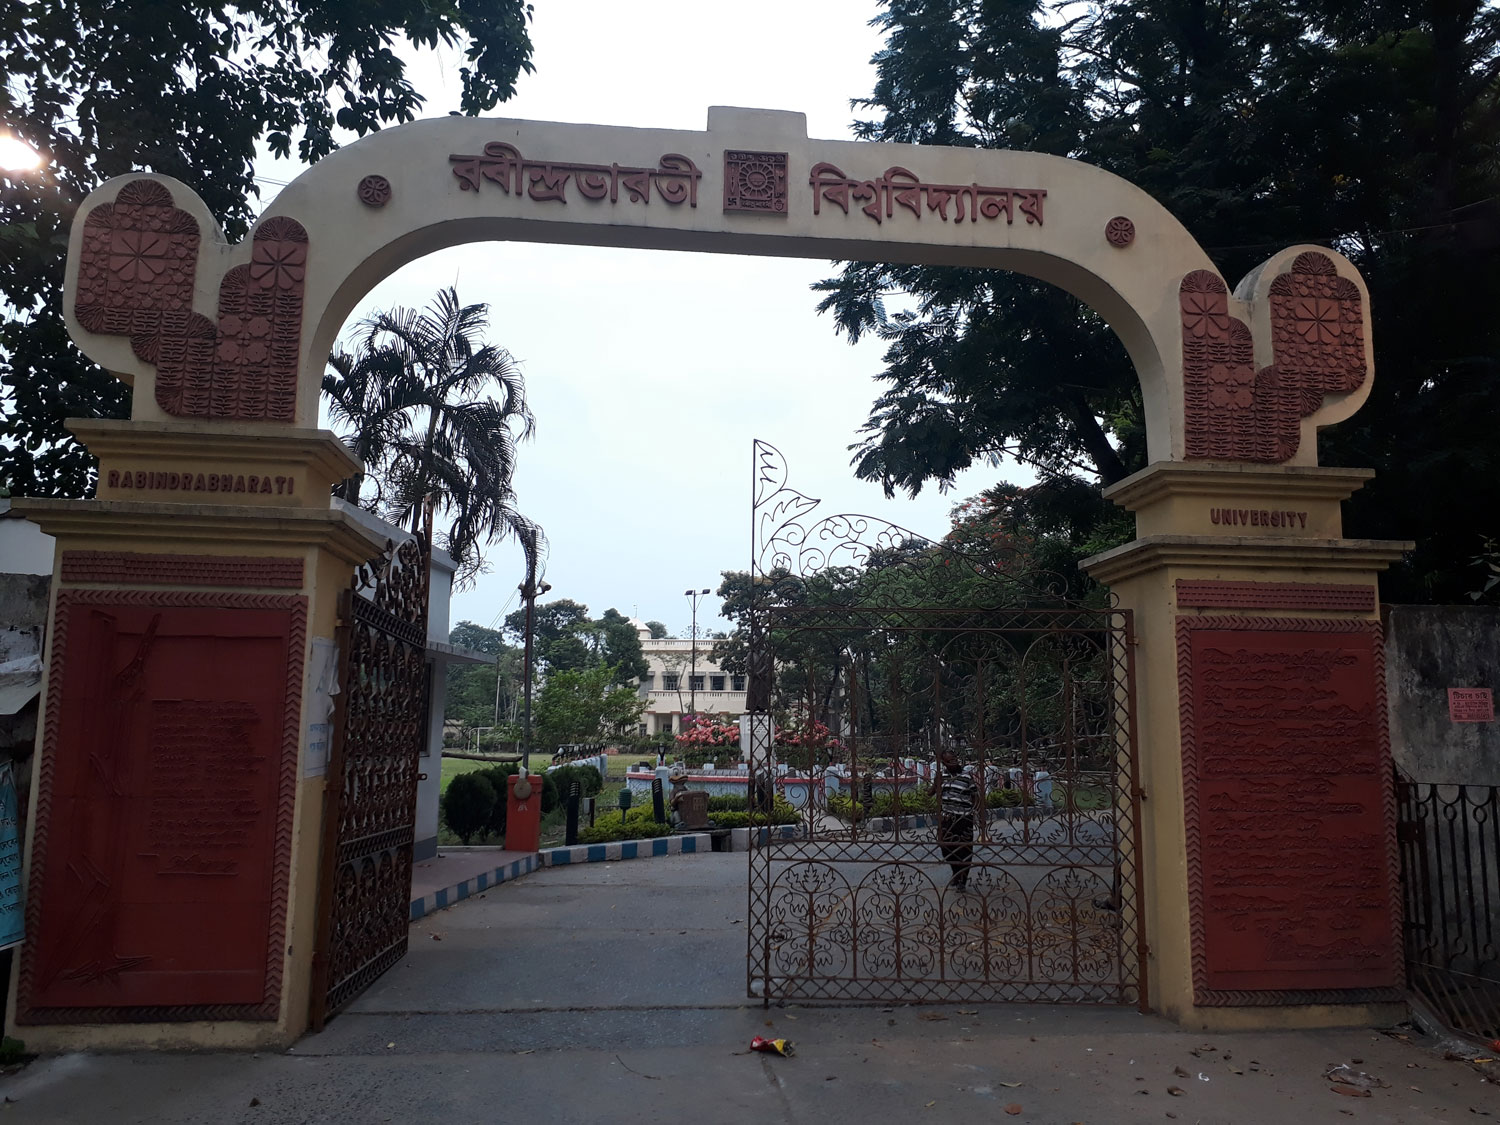 In June 2018, the complaints were forwarded to the Rabindra Bharati University's internal complaint committee that looks into the allegations of sexual harassment